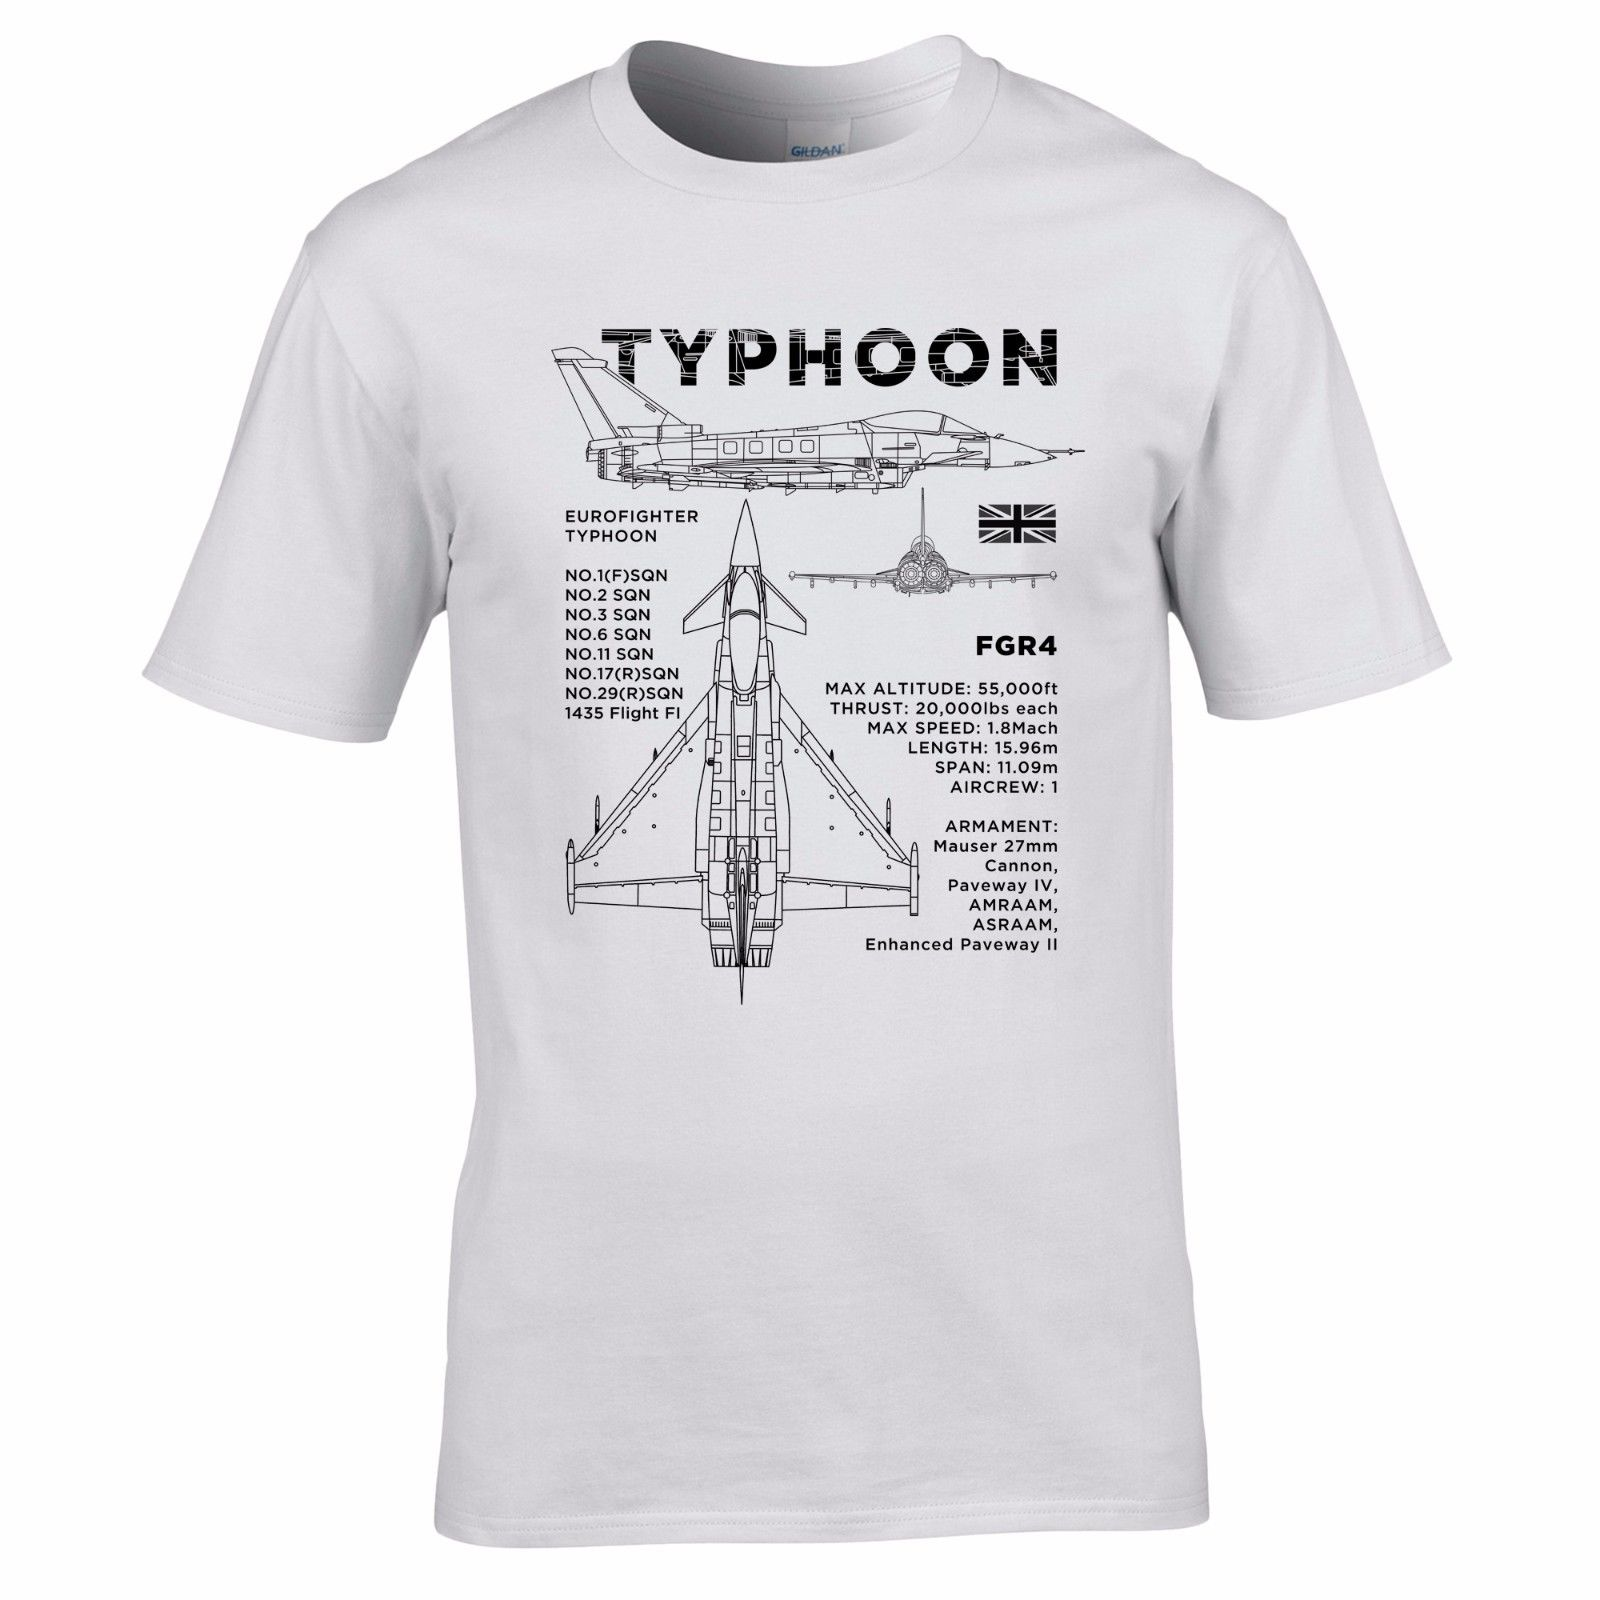 100 cotton brand new t shirts eurofighter typhoon blueprint t shirt 100 cotton brand new t shirts eurofighter typhoon blueprint t shirt aircraft raf fgr4 plane design mens top print t shirt men in t shirts from mens malvernweather Gallery